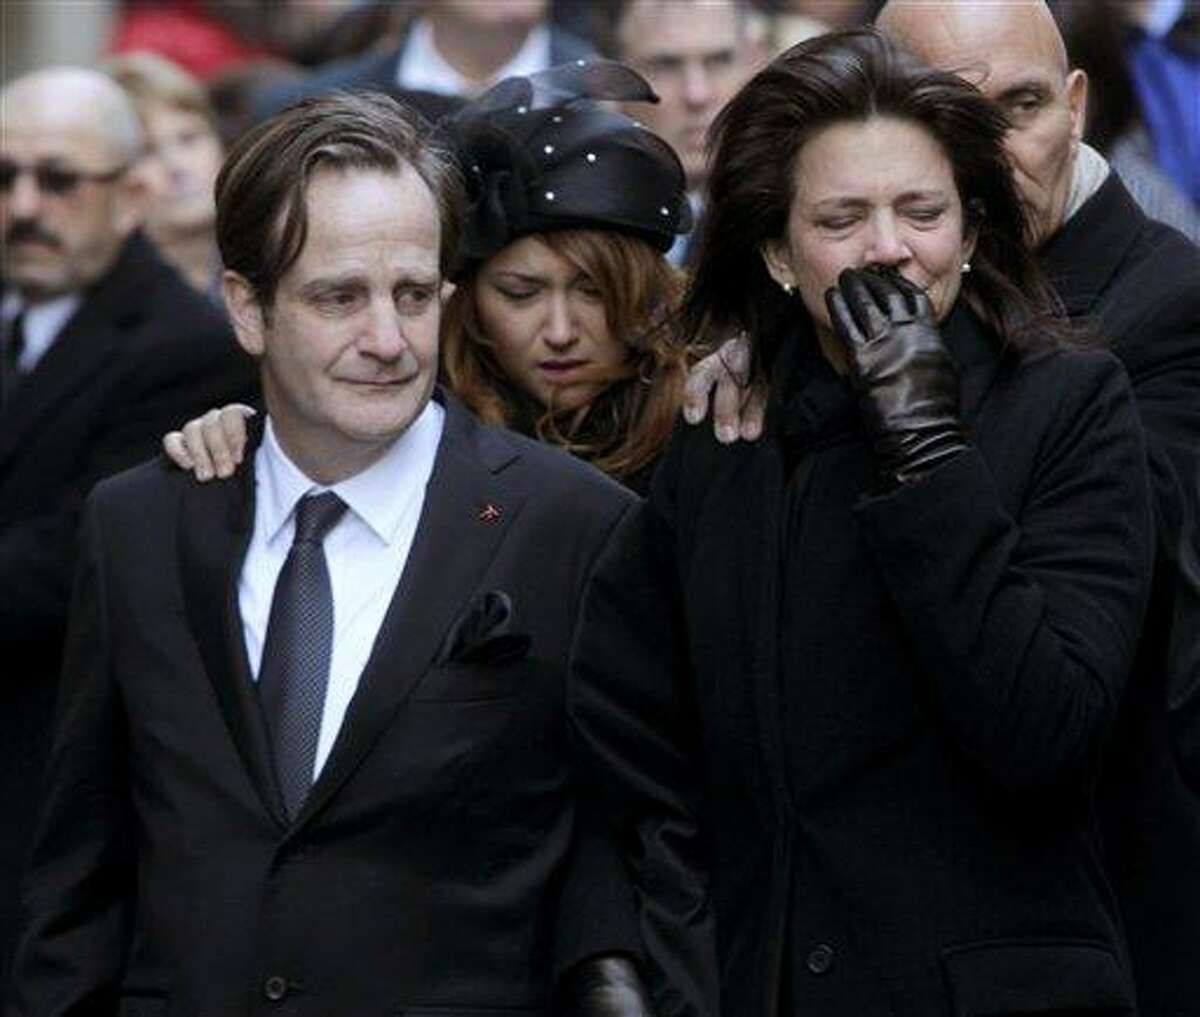 Matthew Badger, left, and Madonna Badger, the parents of three children that were killed in a fire, watch as their children's caskets are carried into a church during the funeral Jan. 5 in New York. Associated Press